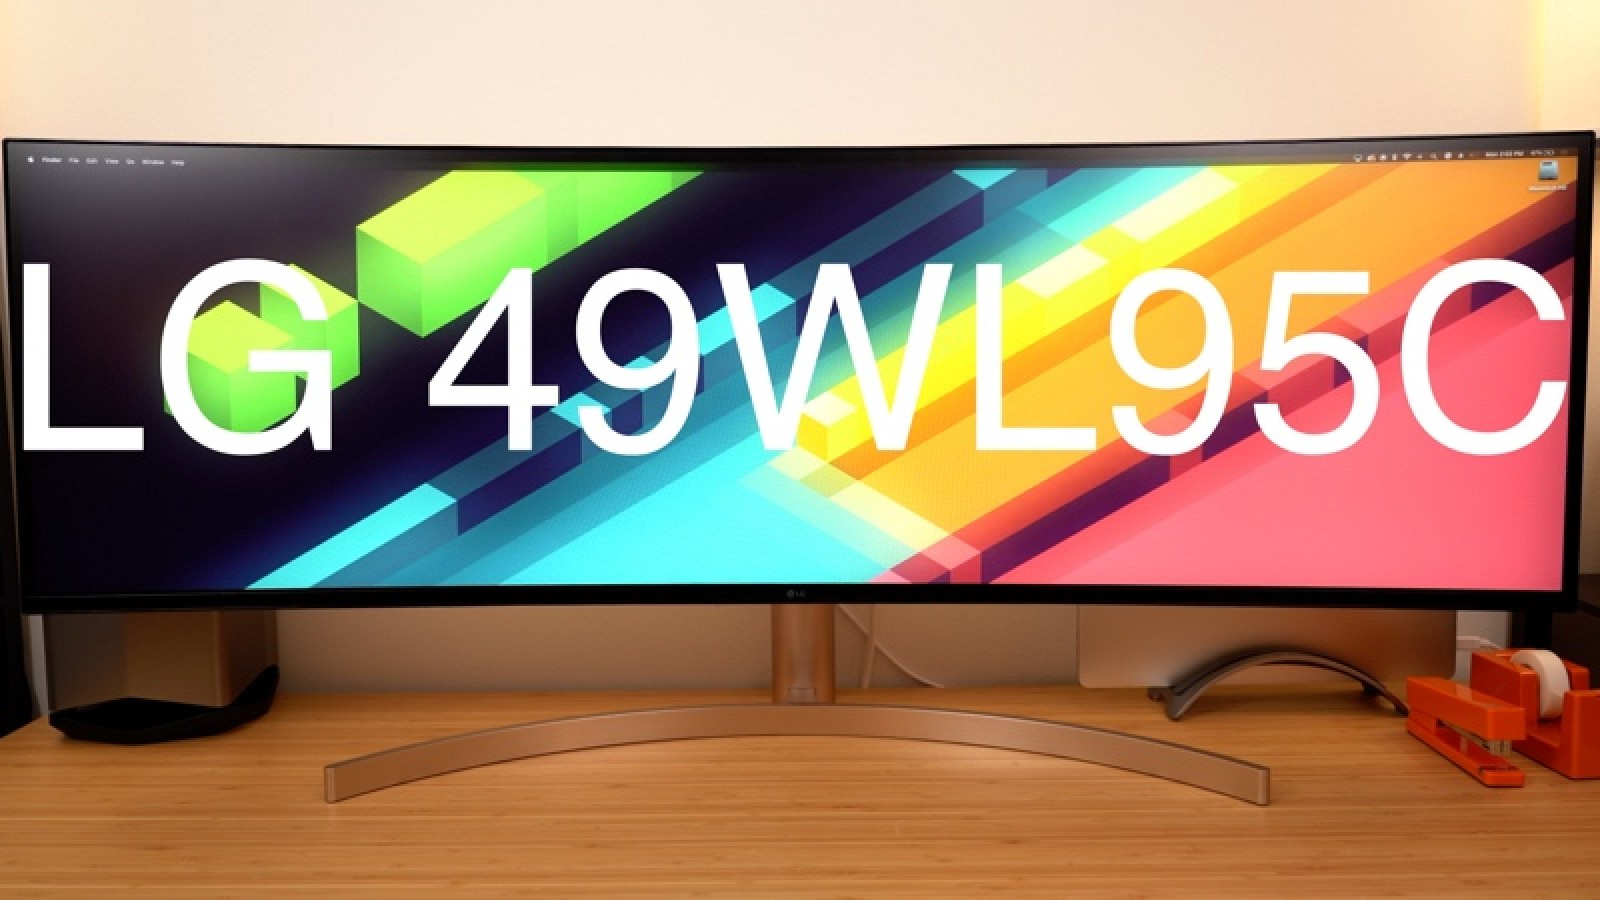 Hands-On With LG's Massive 5K 49-Inch $1,500 Display